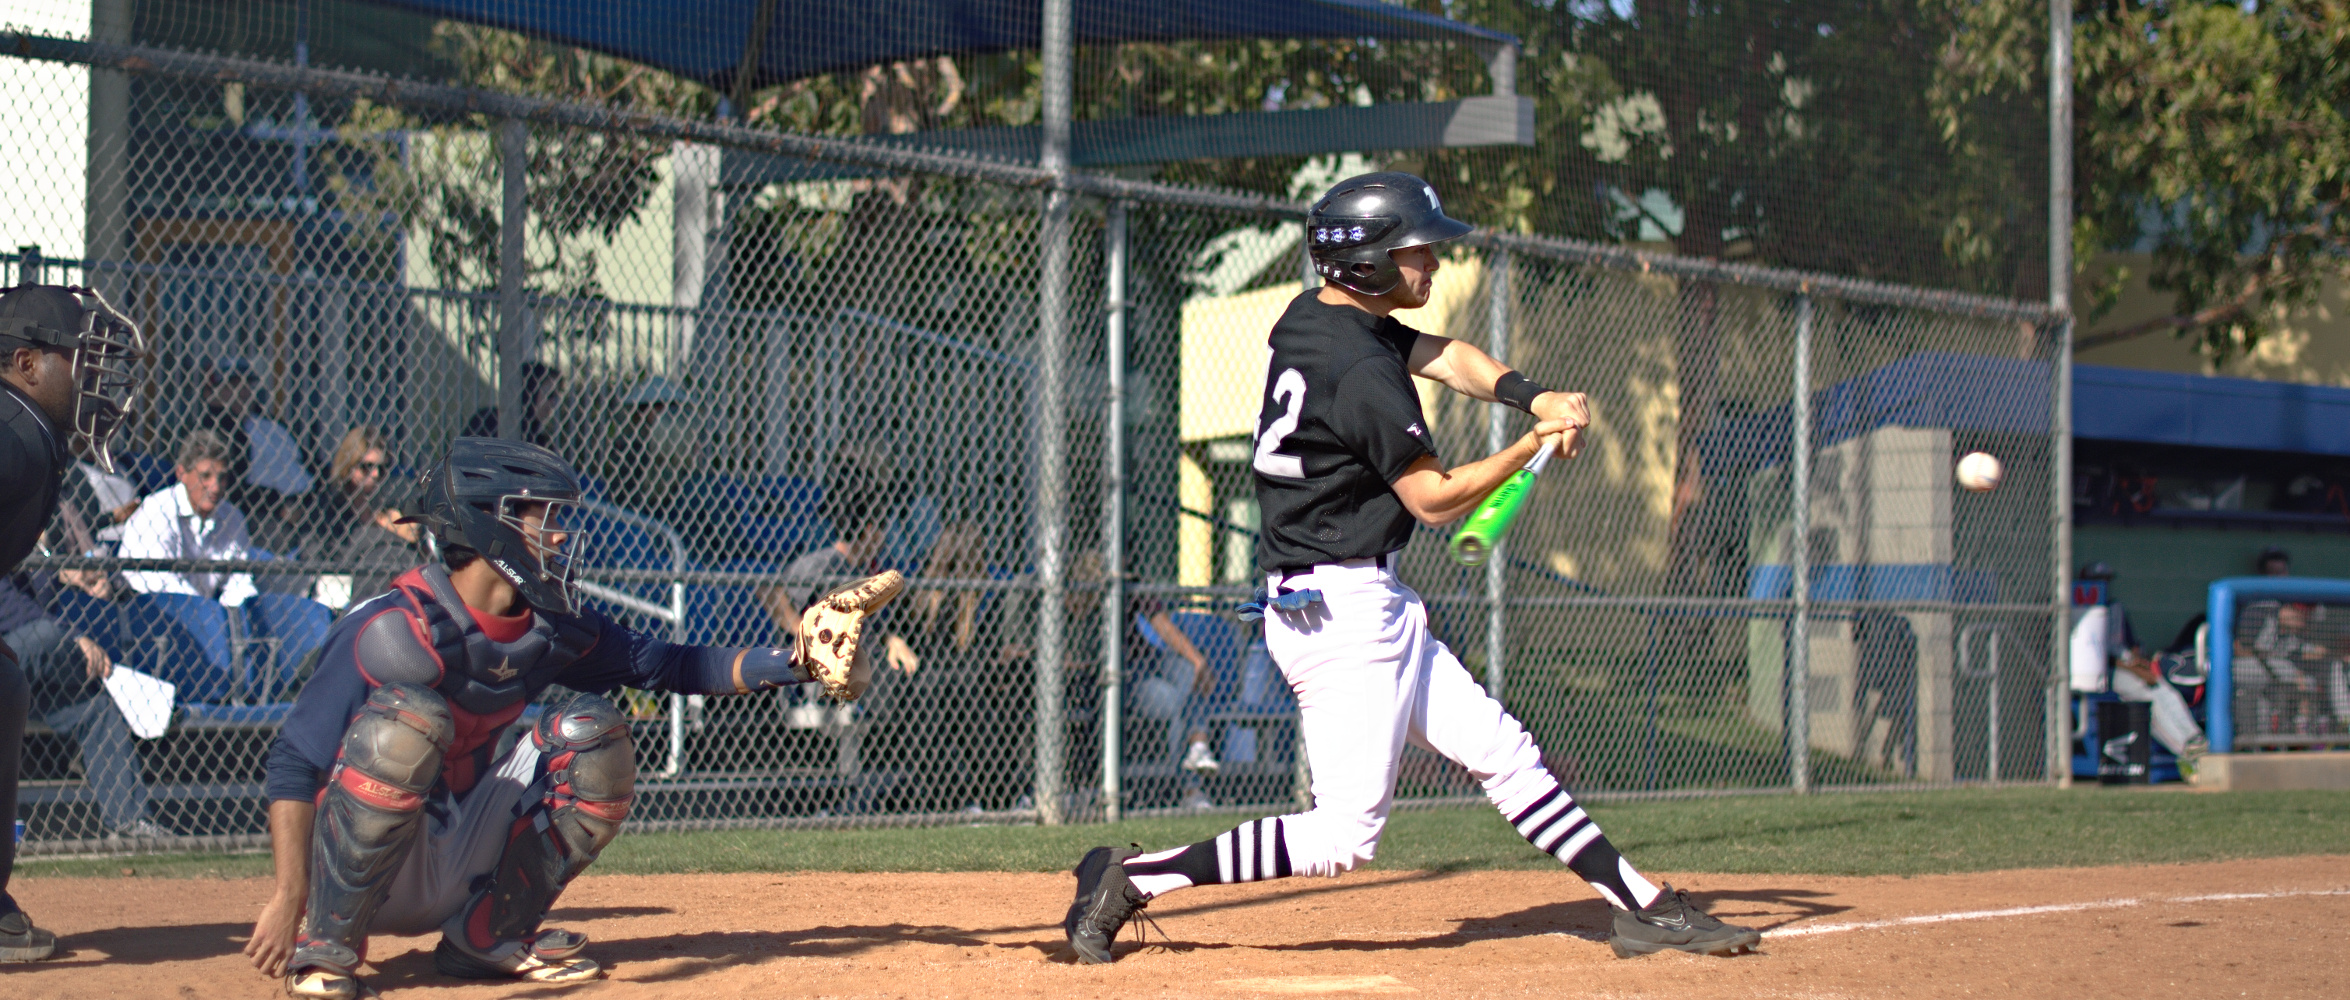 Action - Baseball Player at the Plate